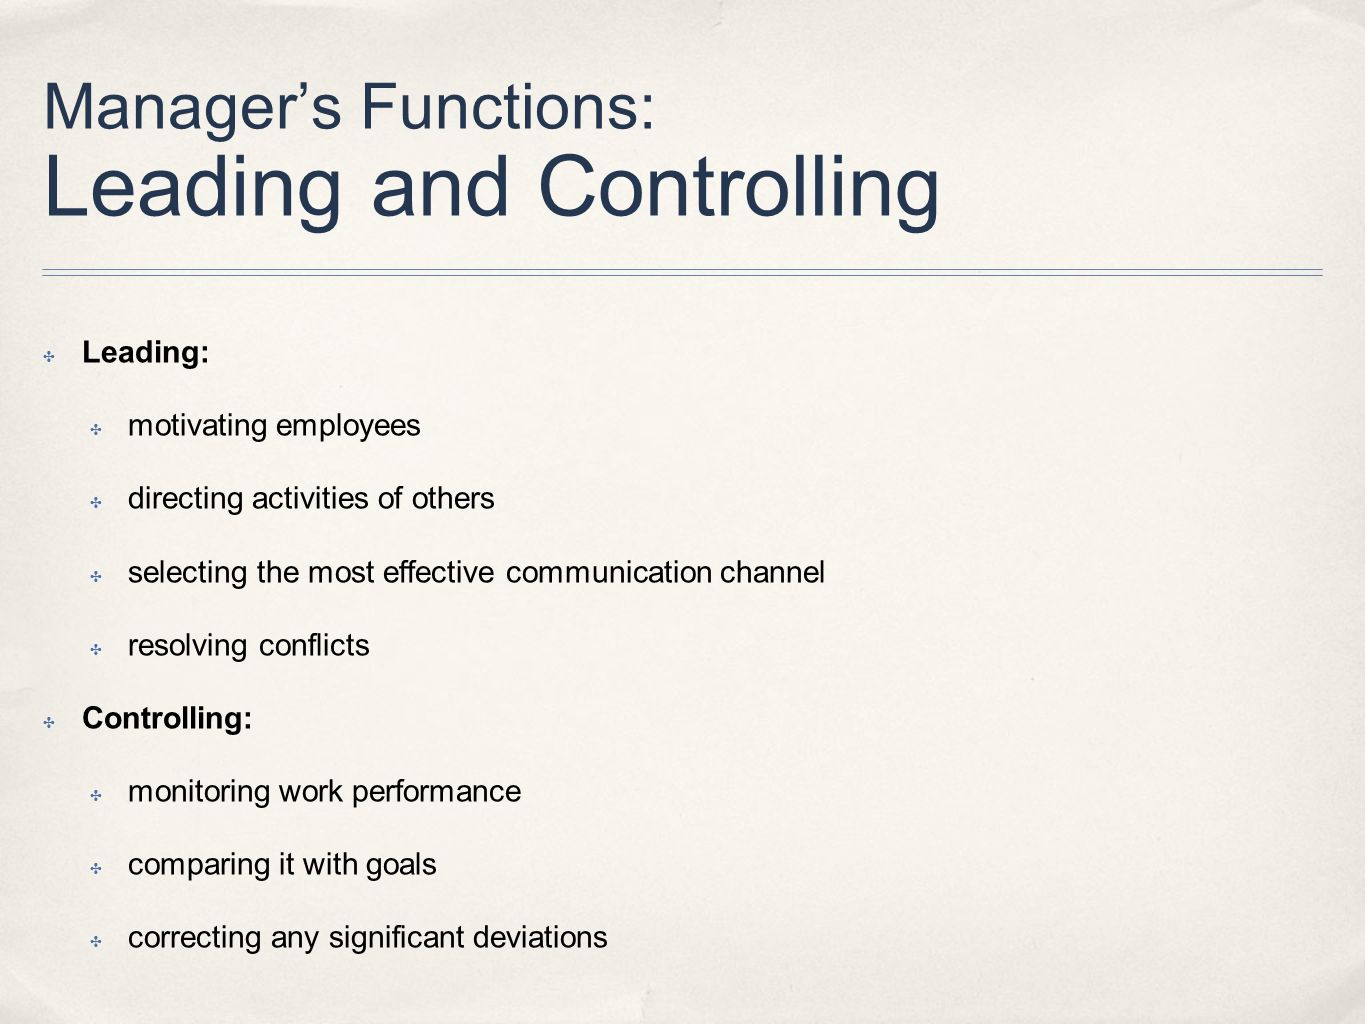 Manager's Functions: Leading and Controlling